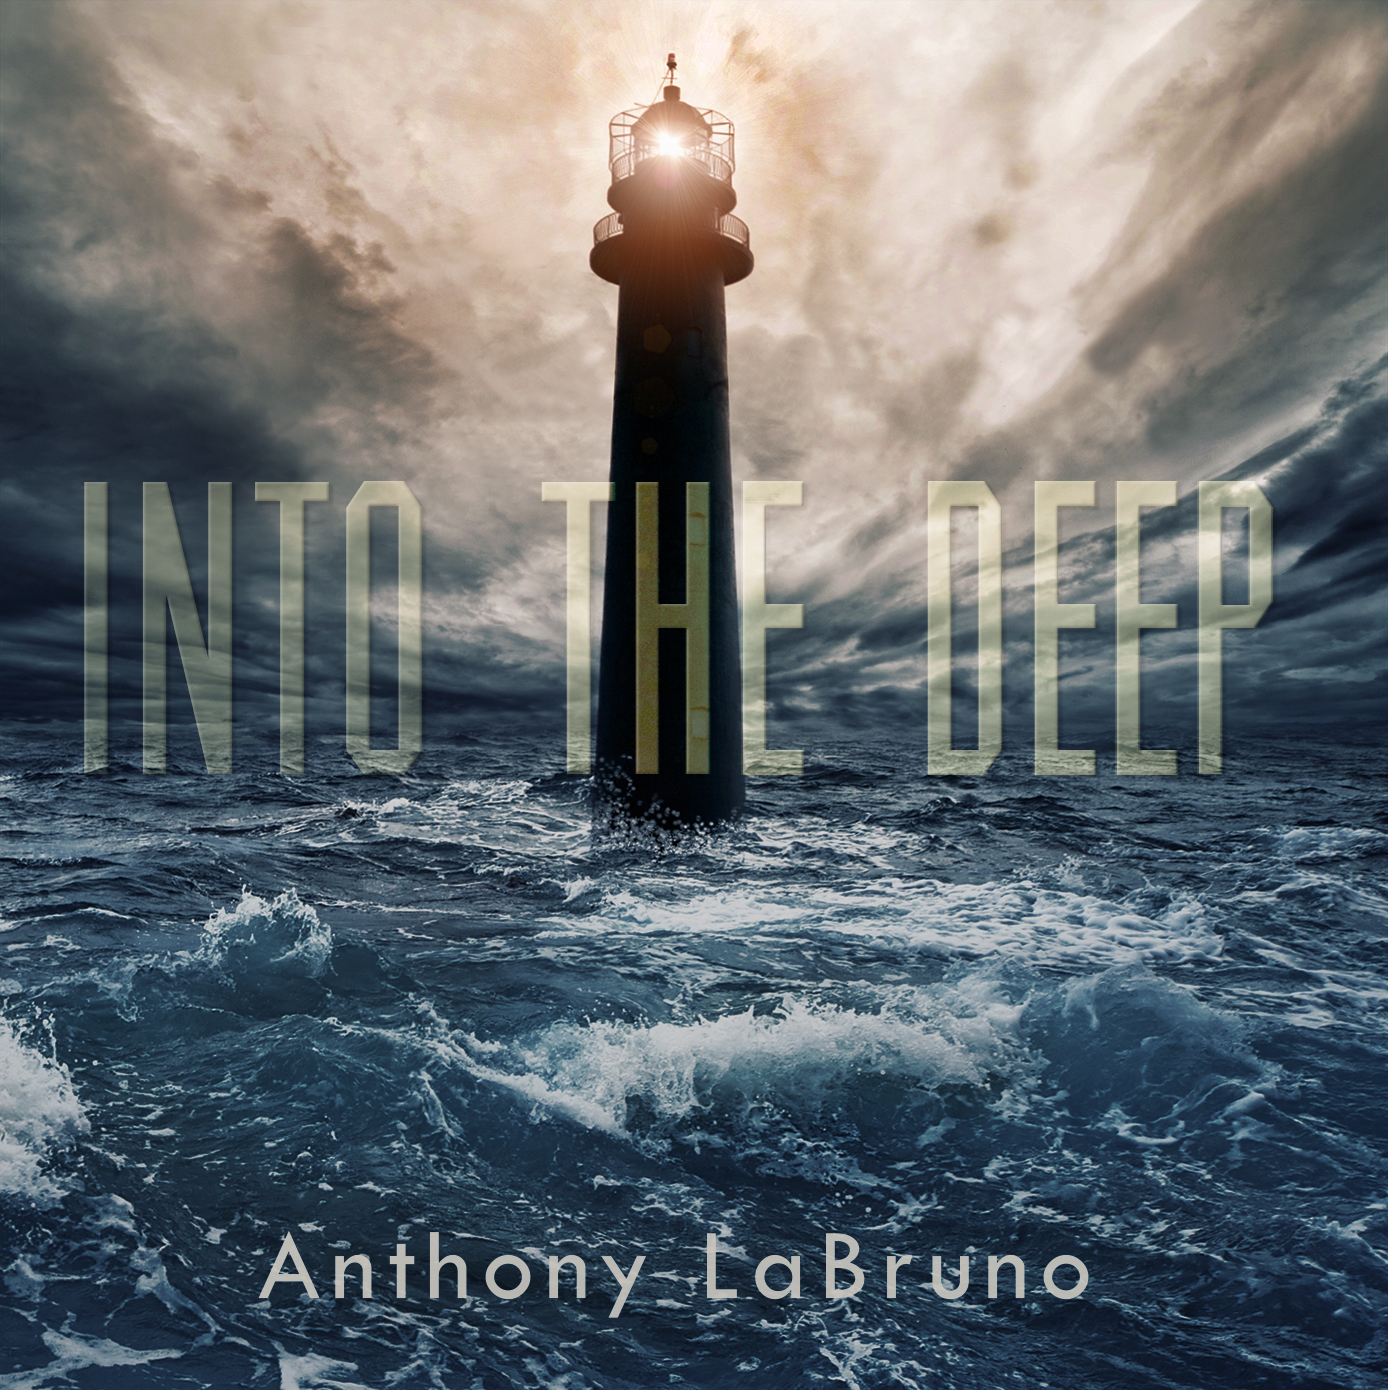 WORSHIP LEADER ANTHONY LABRUNO RELEASES NEW SINGLE